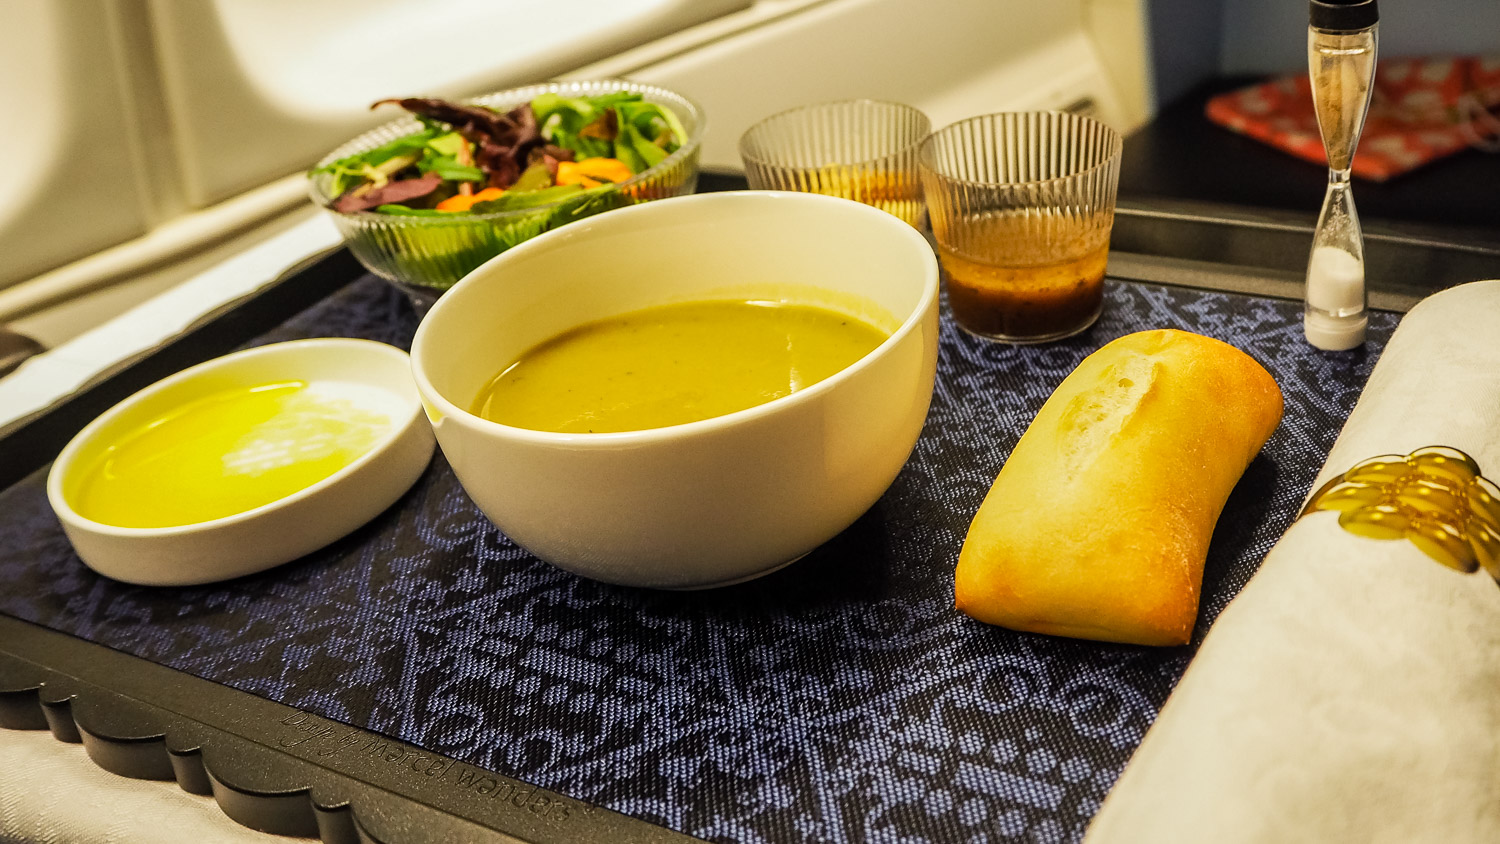 Pea Soup - KLM Business Class - by Britney Hope - The Wayward Post